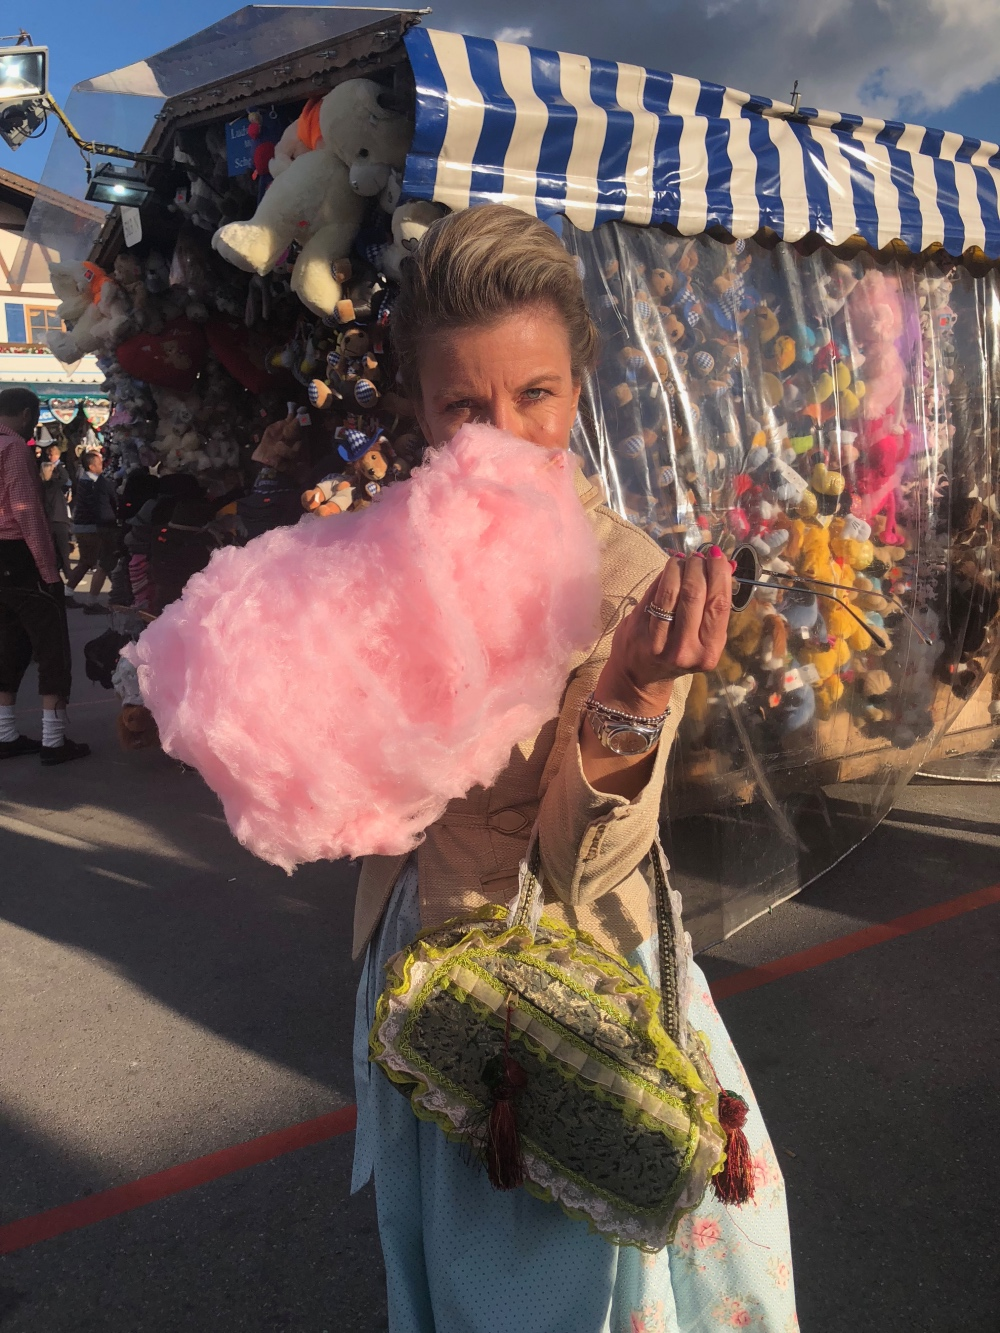 Wiesn-Gaudi: Zuckerwatte